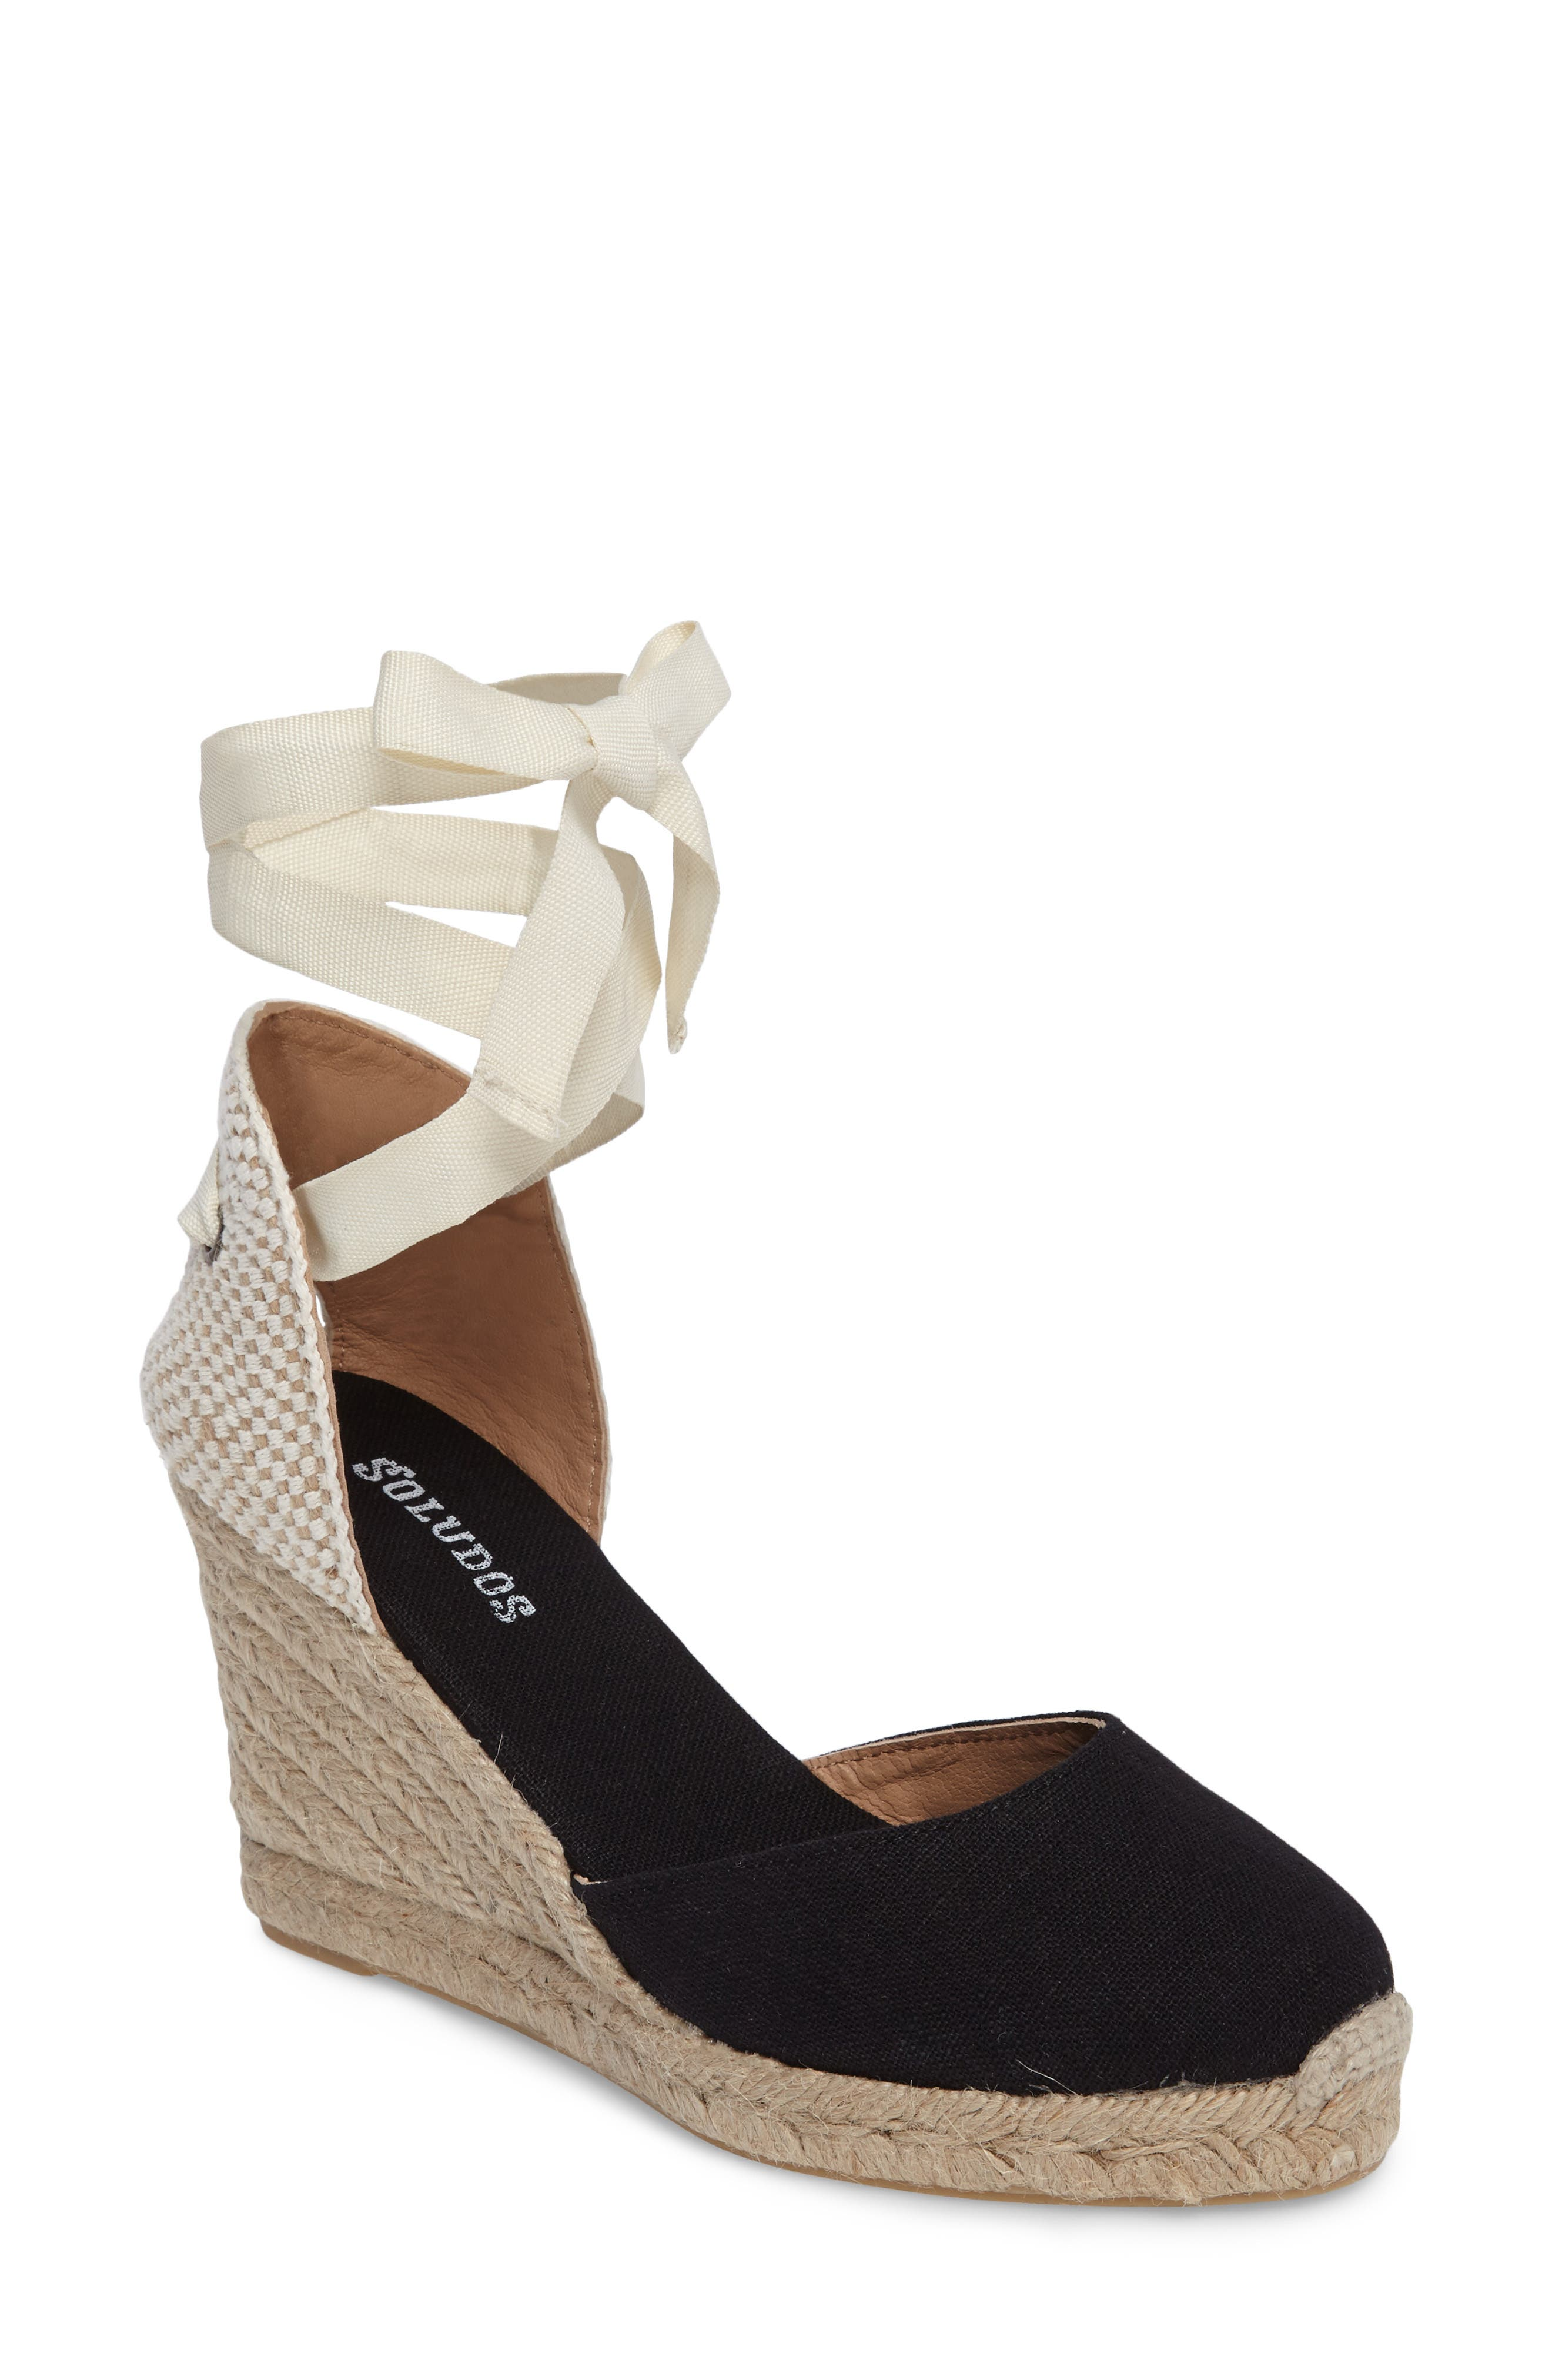 Alternate Image 1 Selected - Soludos Wedge Lace-Up Espadrille Sandal (Women)